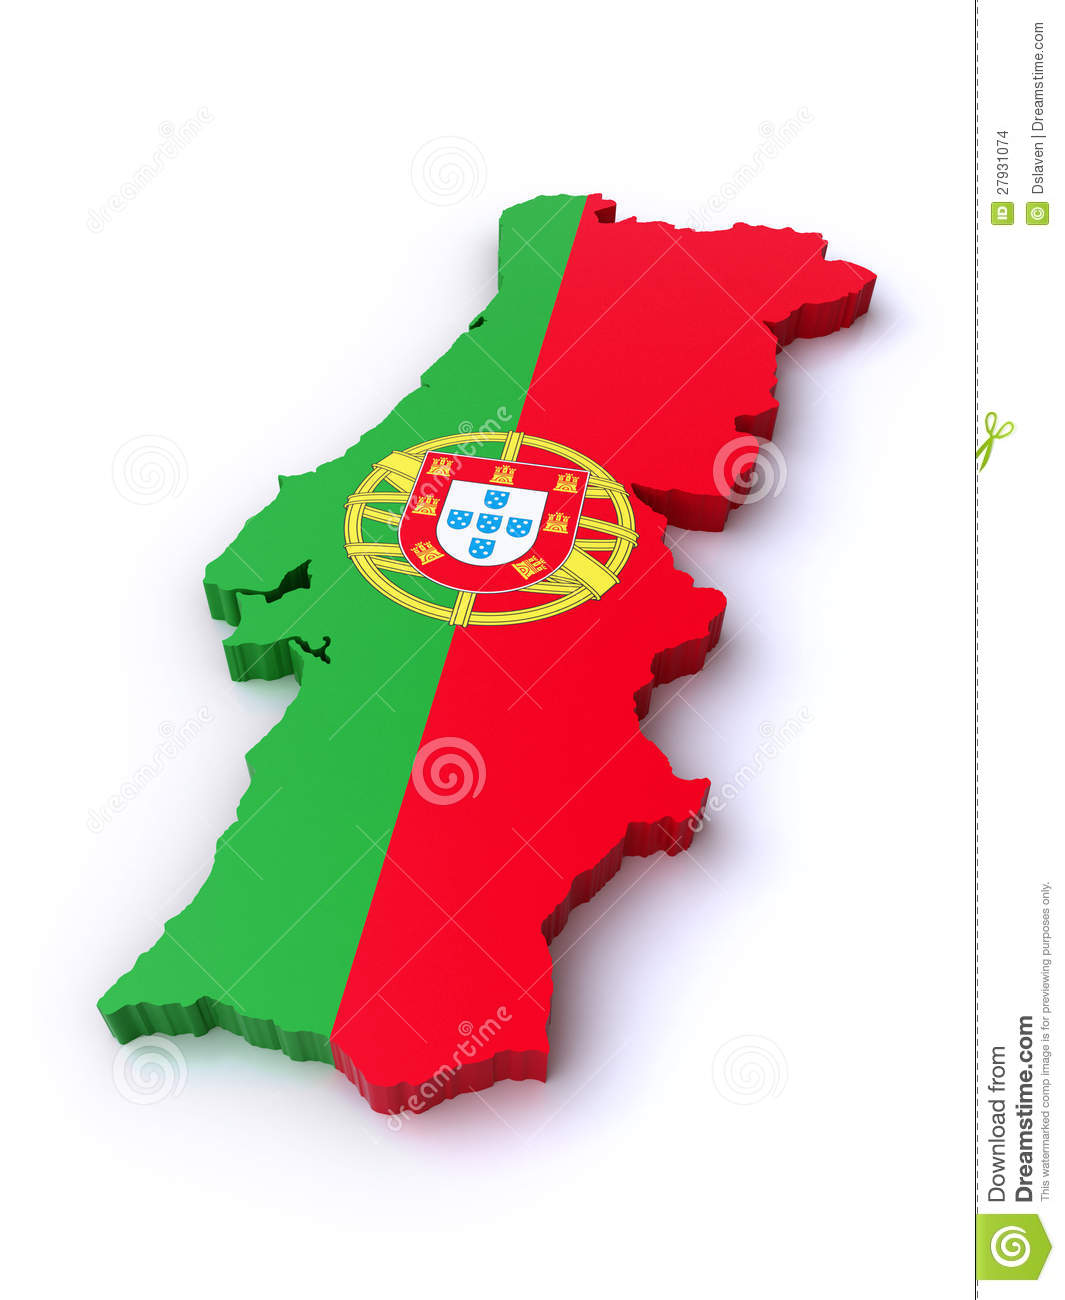 mapa de portugal em 3d 3d map of Portugal stock illustration. Illustration of green  mapa de portugal em 3d